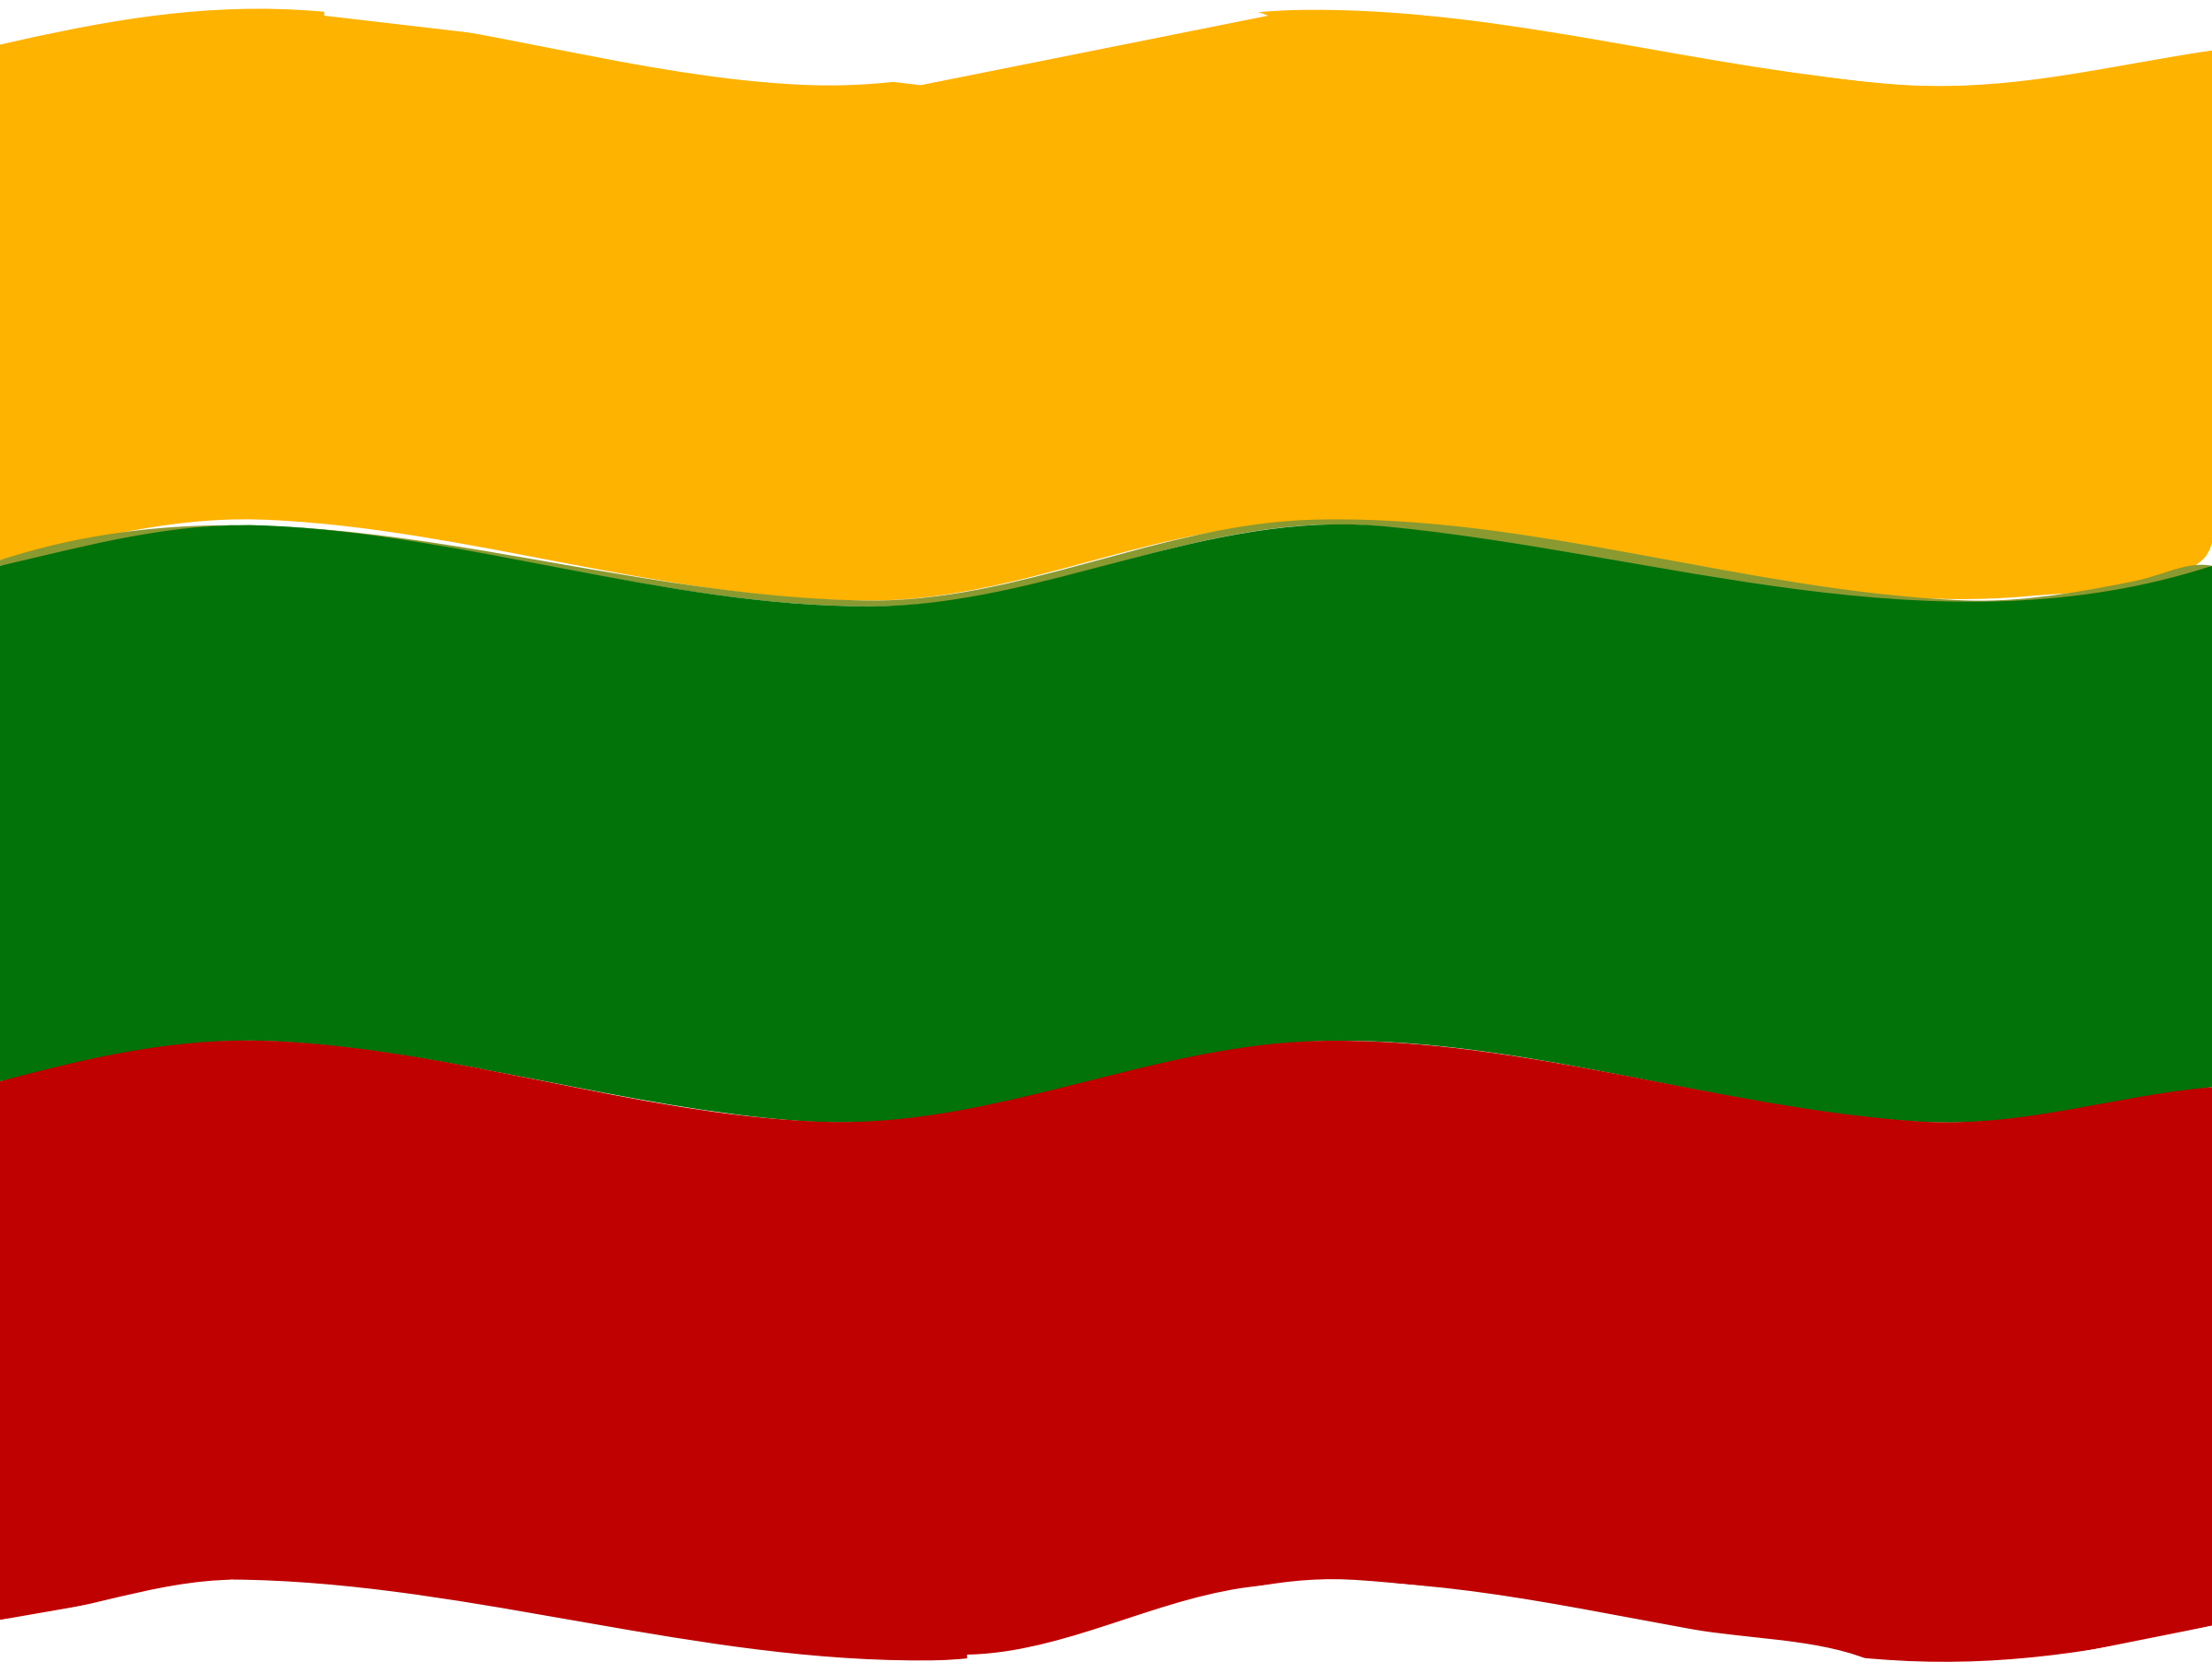 HQ Flag Of Lithuania Wallpapers   File 69.18Kb